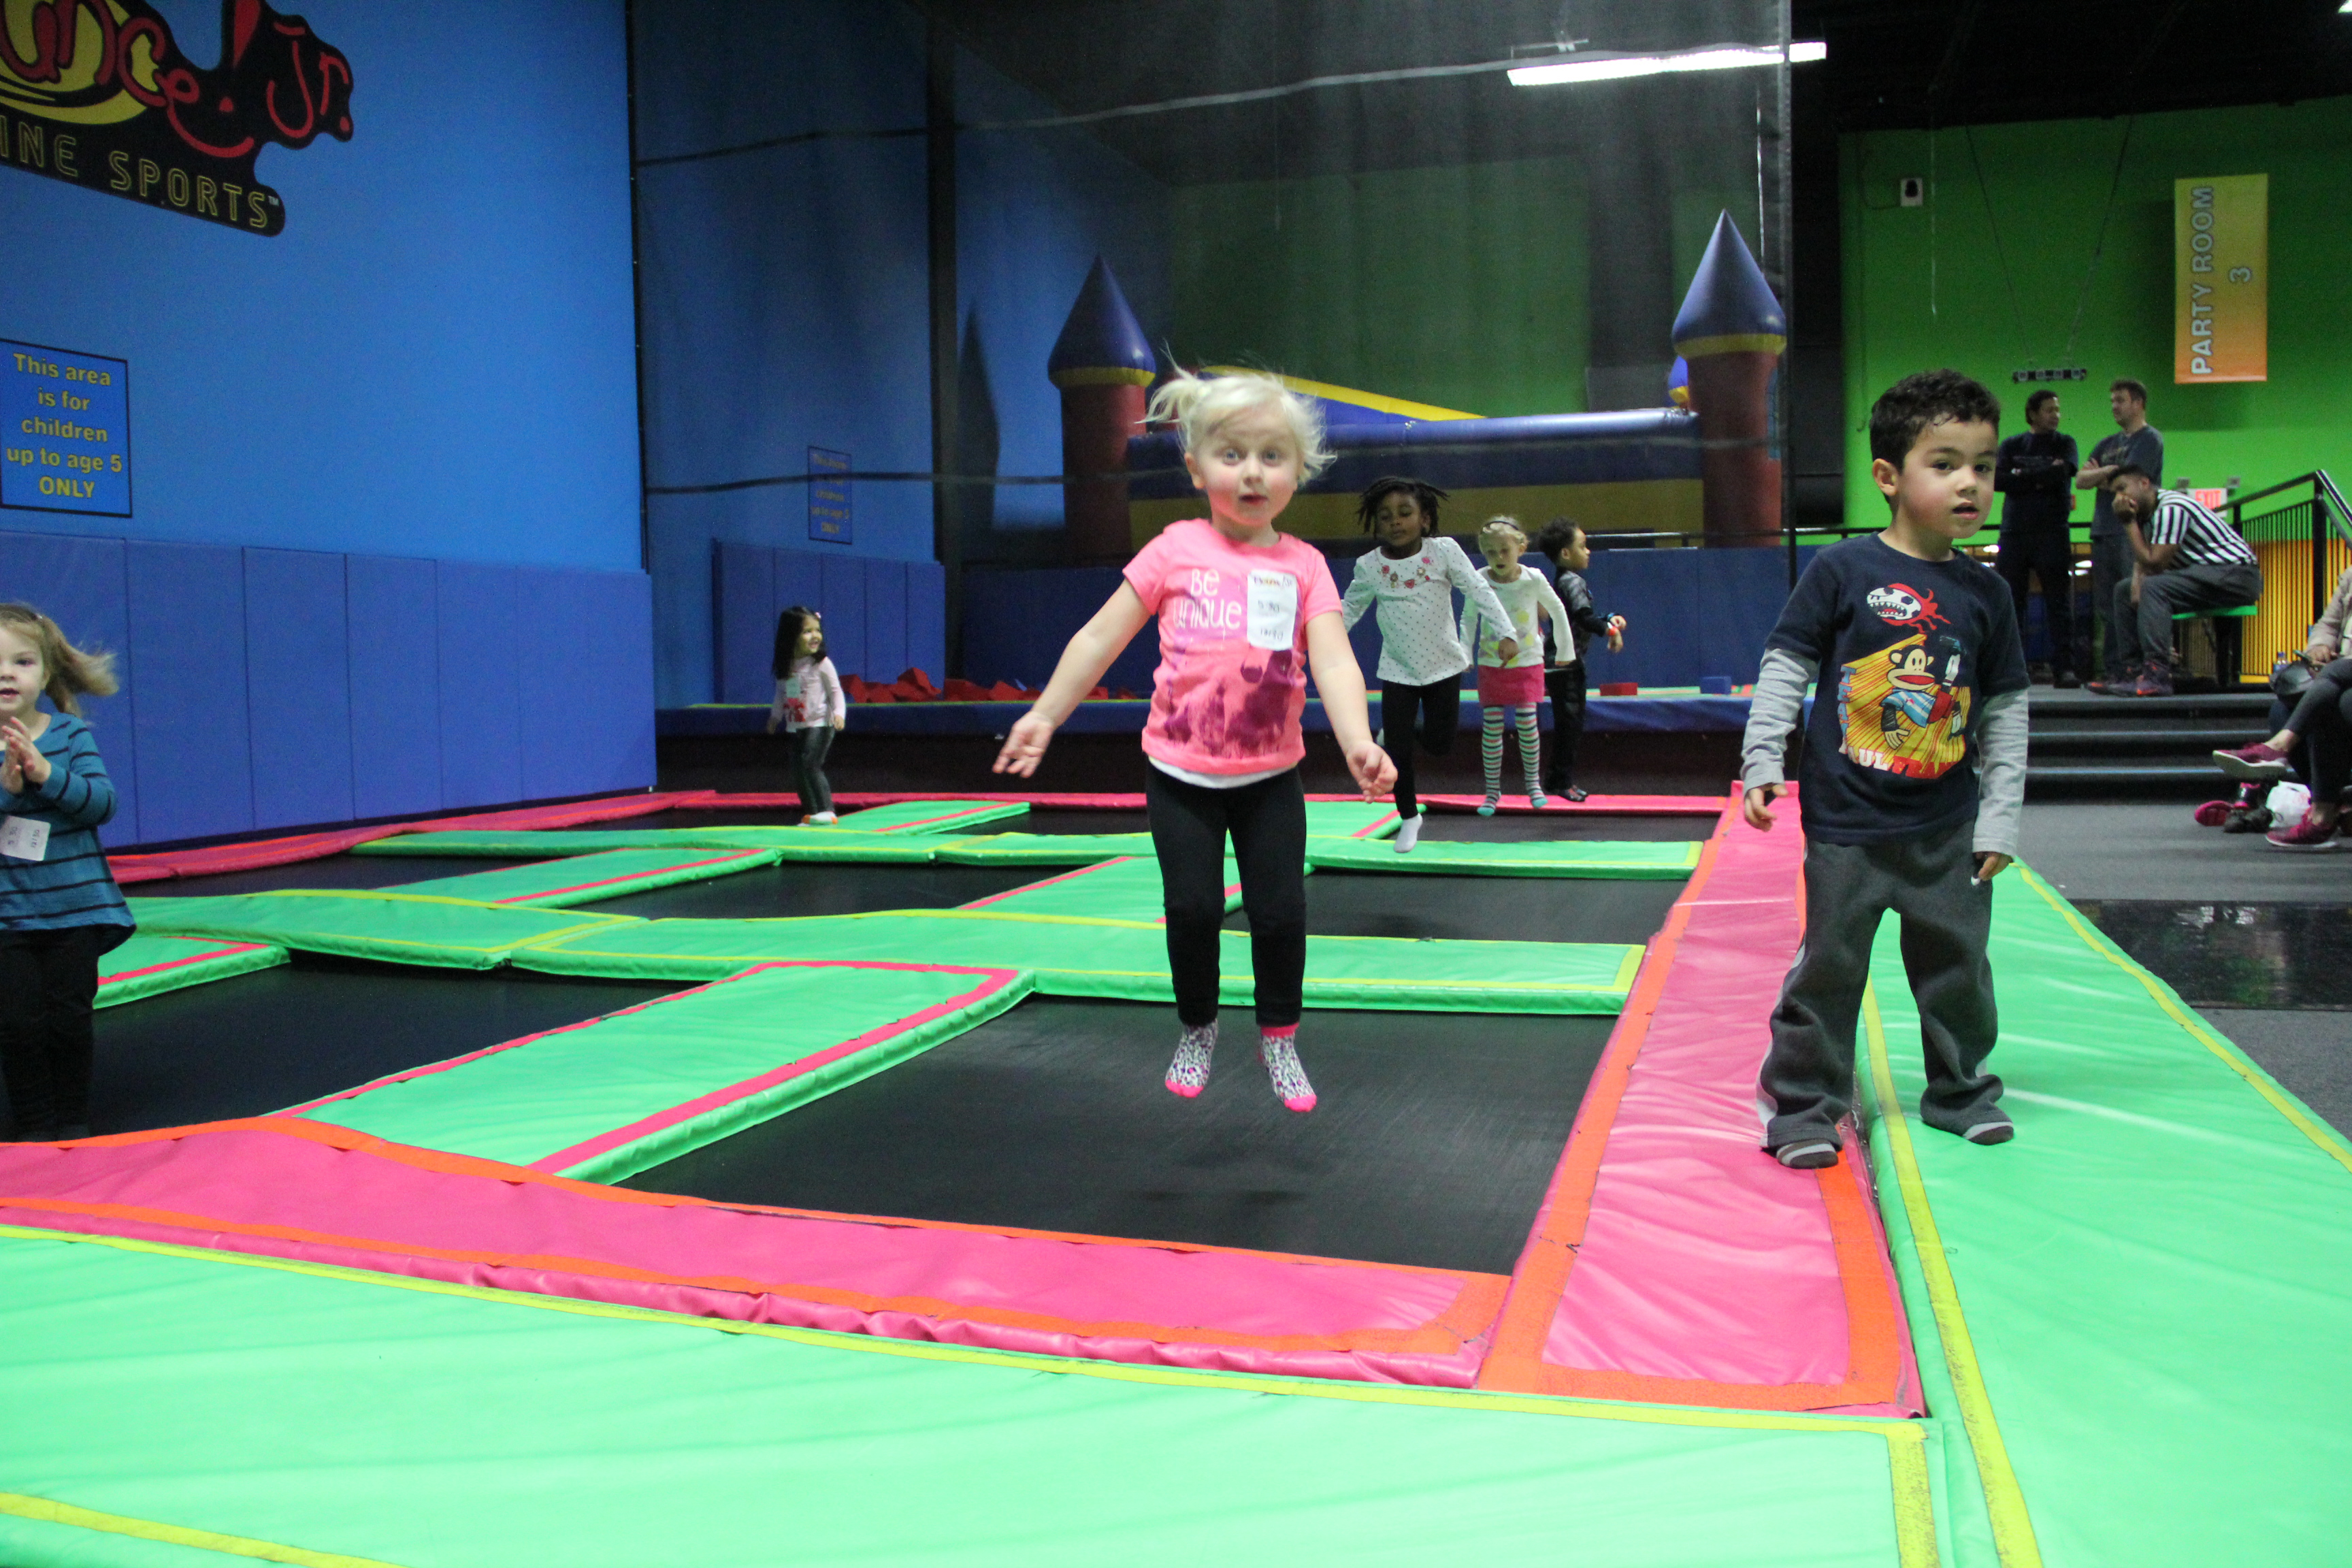 Bounce House in Valley Cottage Adds New Obstacle Course and Café